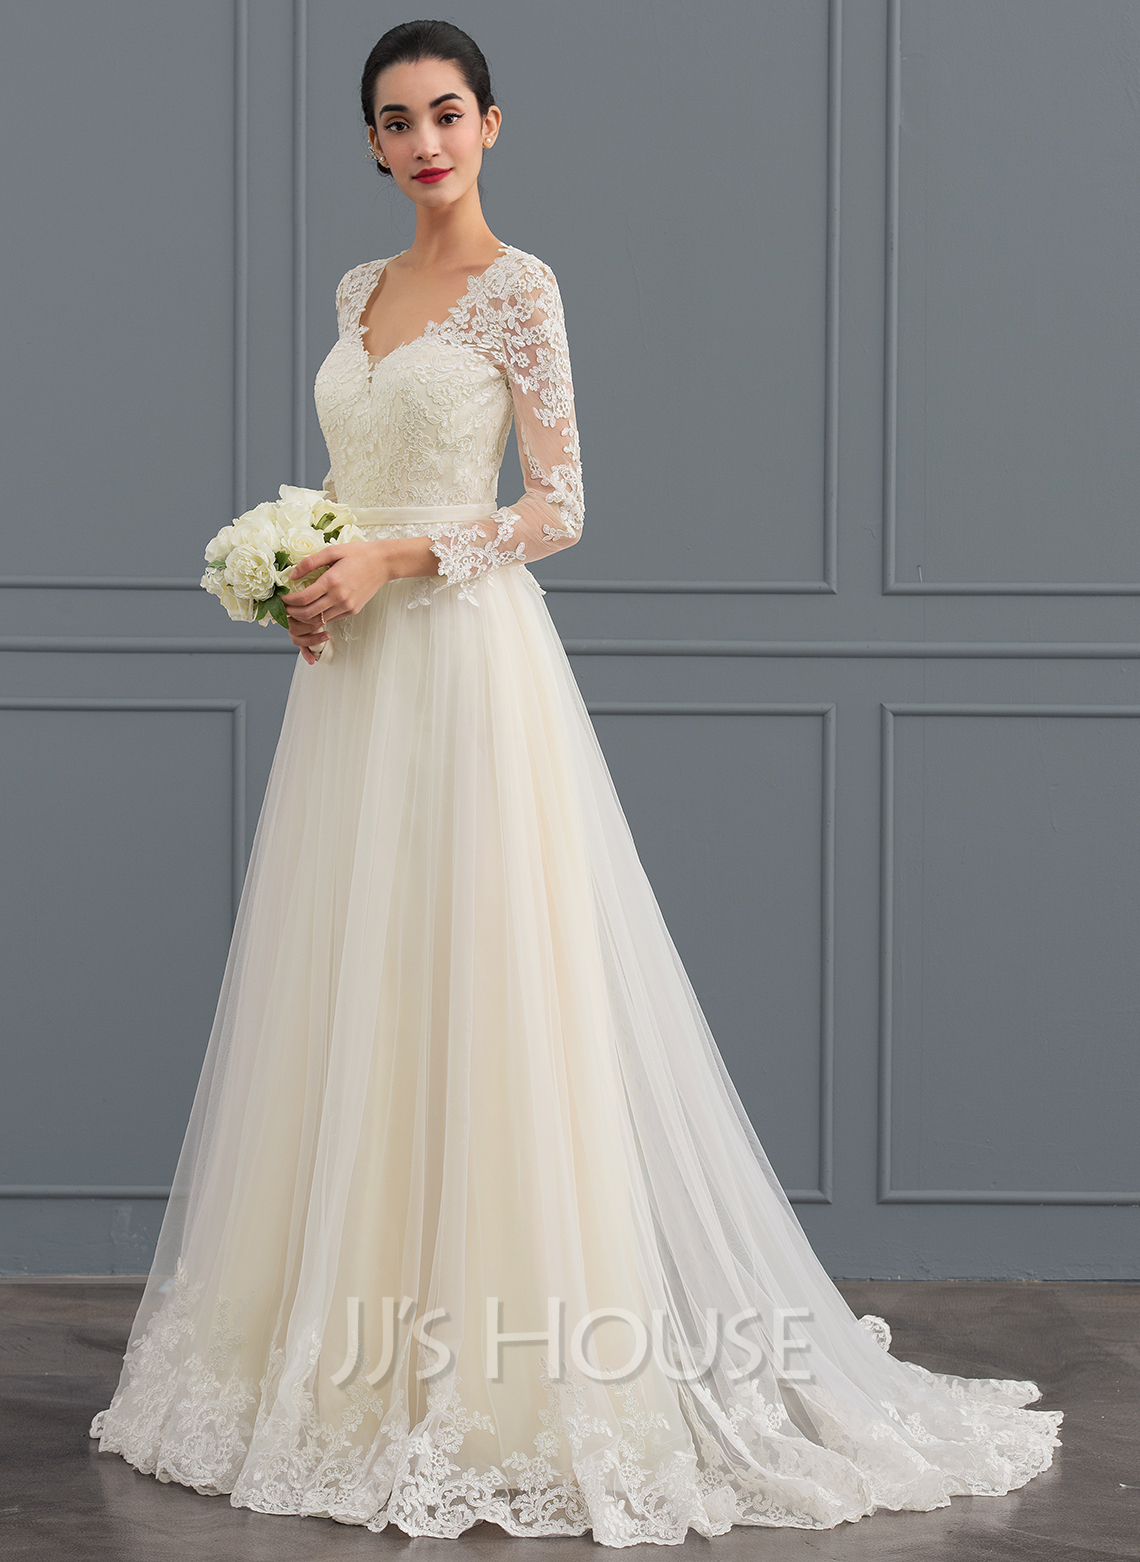 Plus size wedding dresses affordable high quality jjshouse ball gown v neck sweep train tulle wedding dress junglespirit